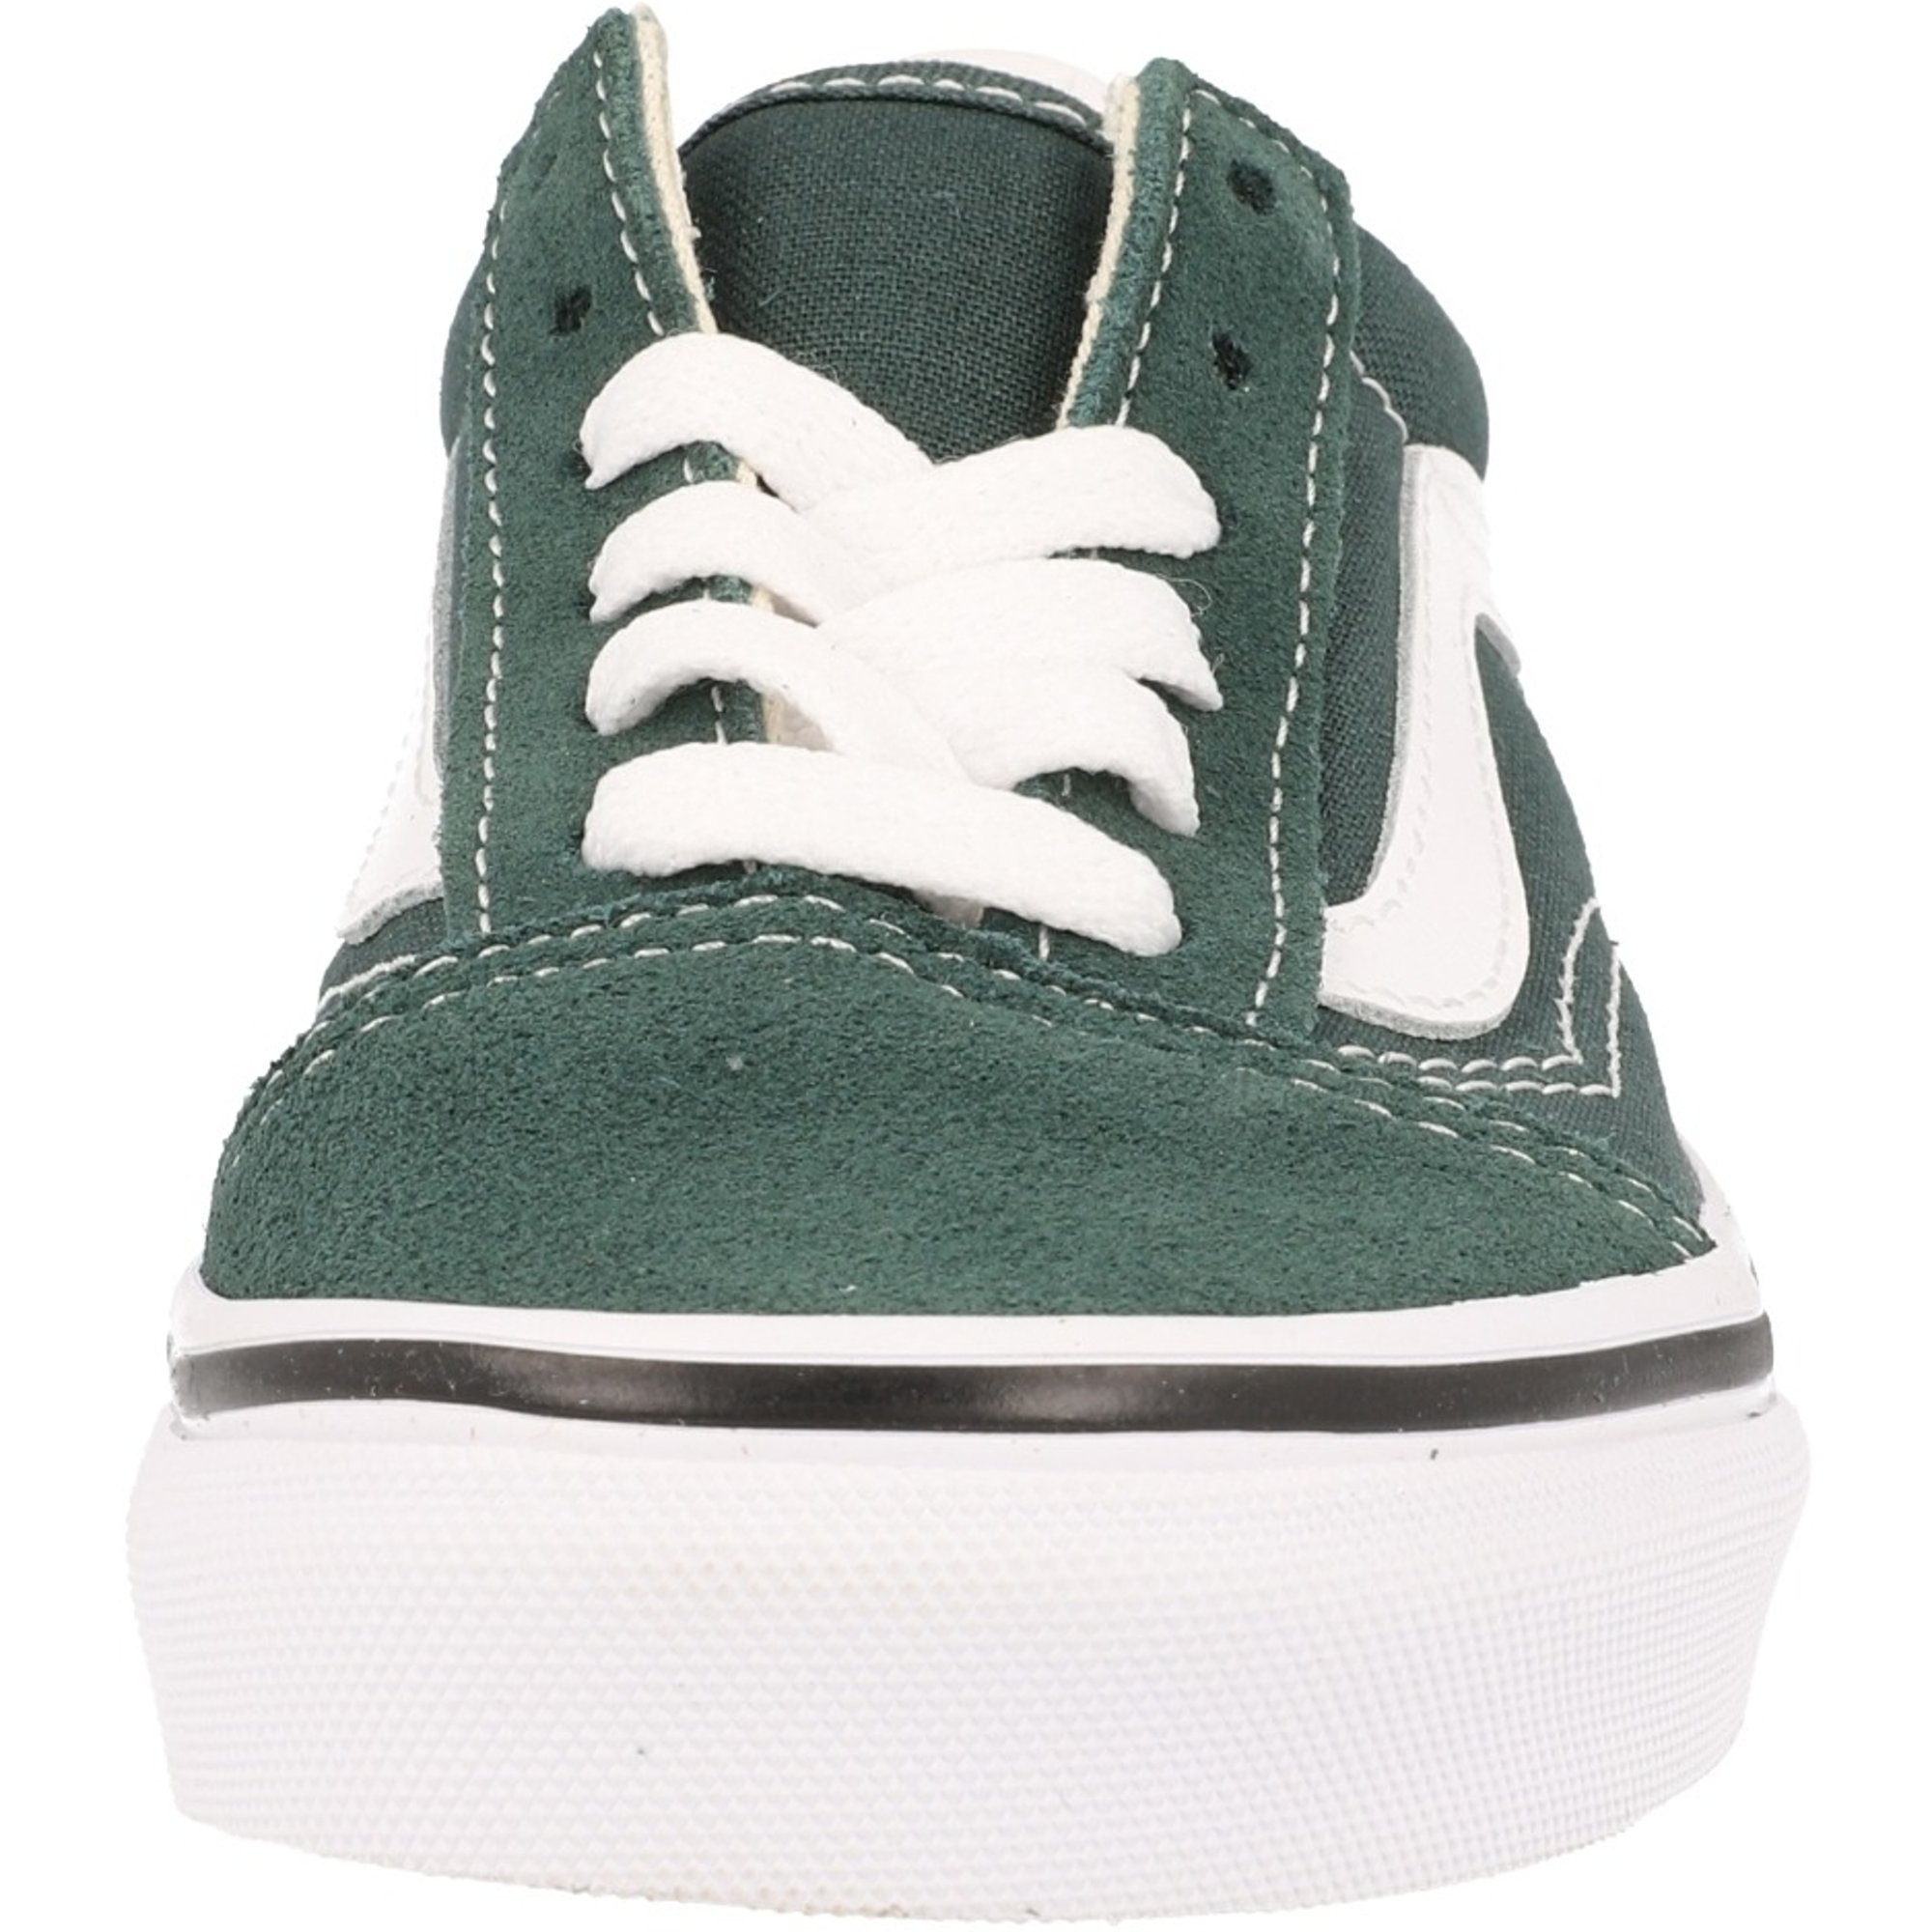 Grüne VANS Sneaker UY OLD SKOOL KIDS | Omoda.at